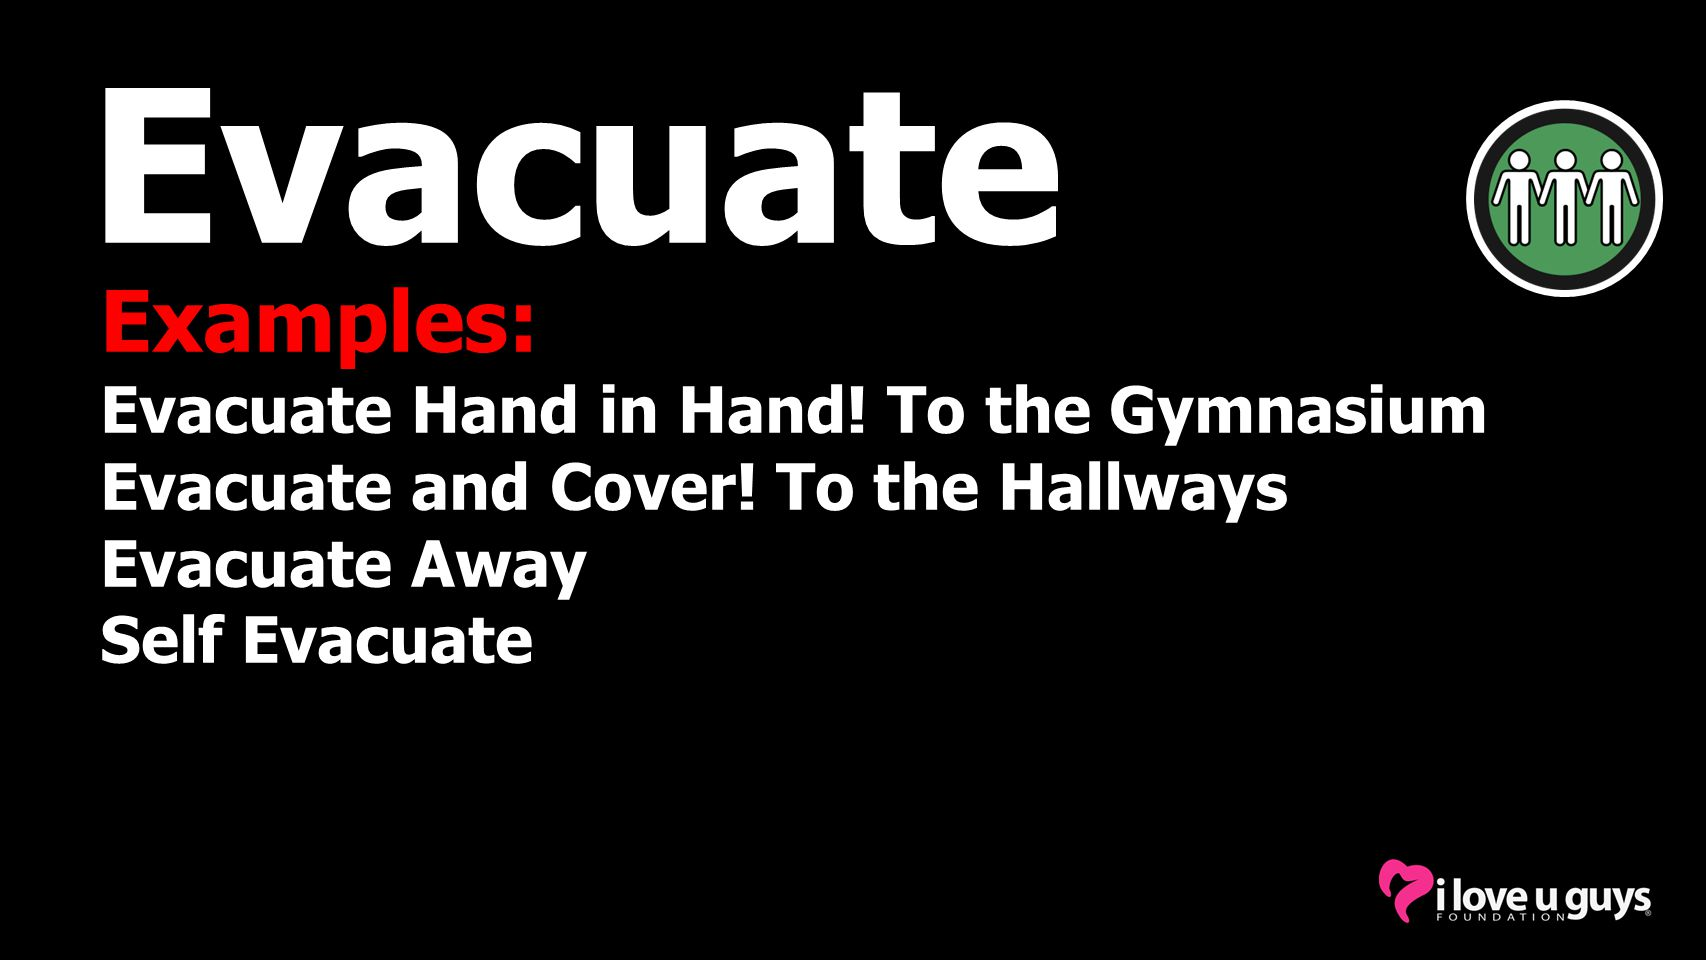 Evacuate Examples: Evacuate Hand in Hand! To the Gymnasium